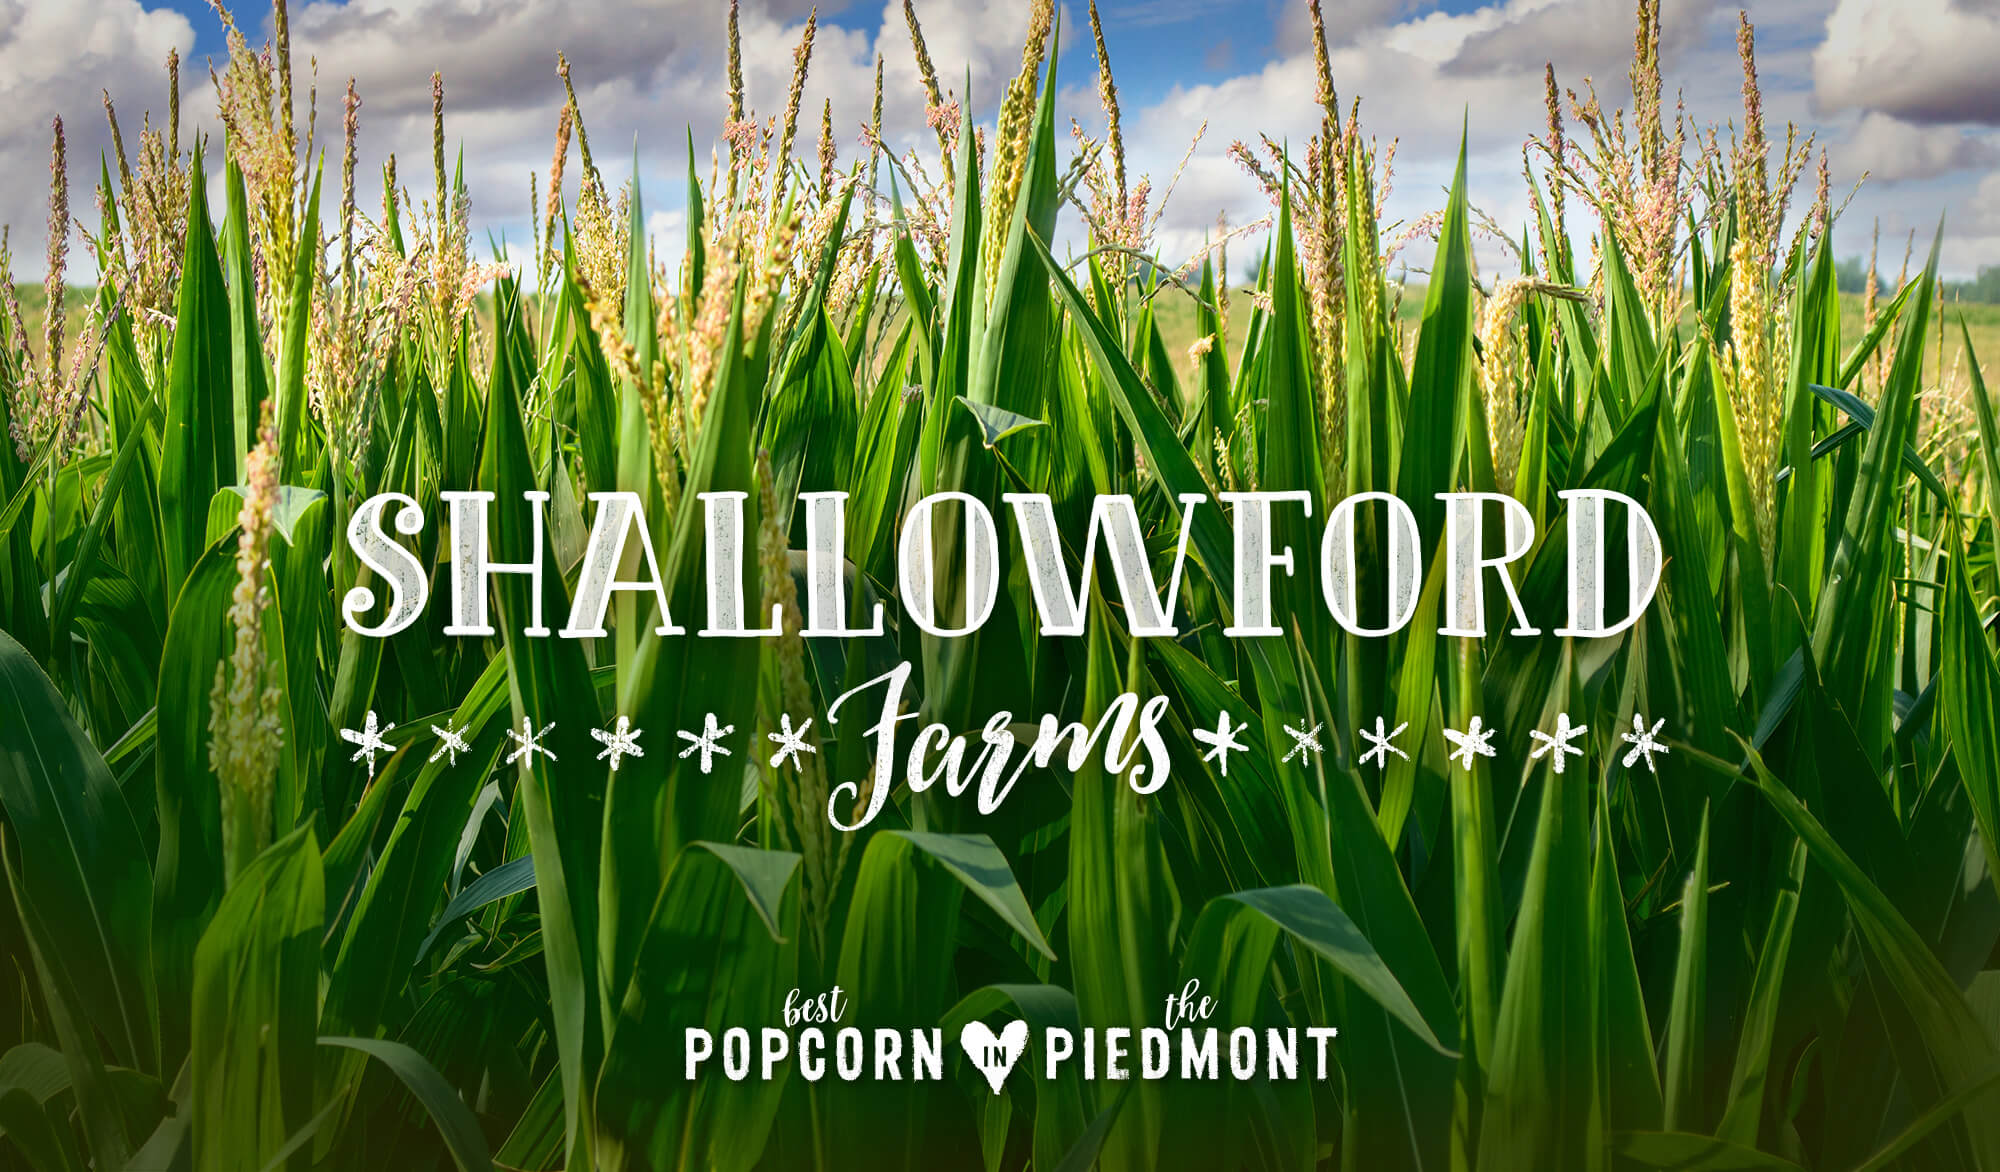 Shallowford Farms